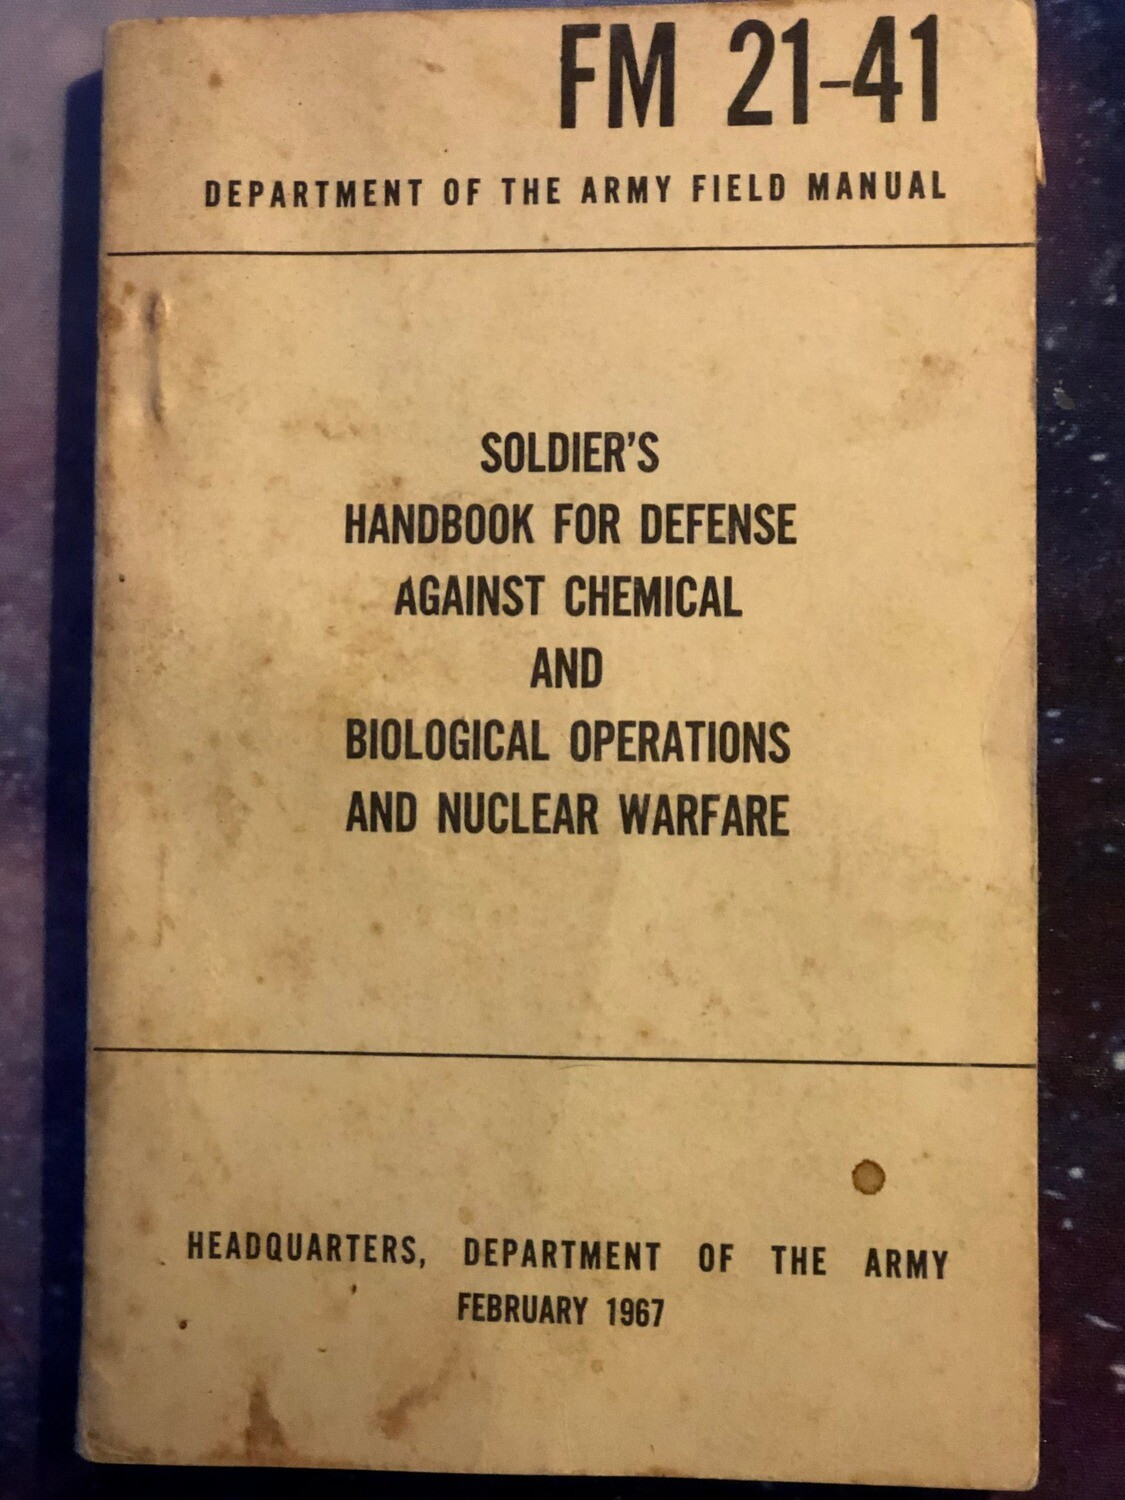 FIELD MANUAL:  Handbook for Defense of Chemical and Biological Operations, 1967